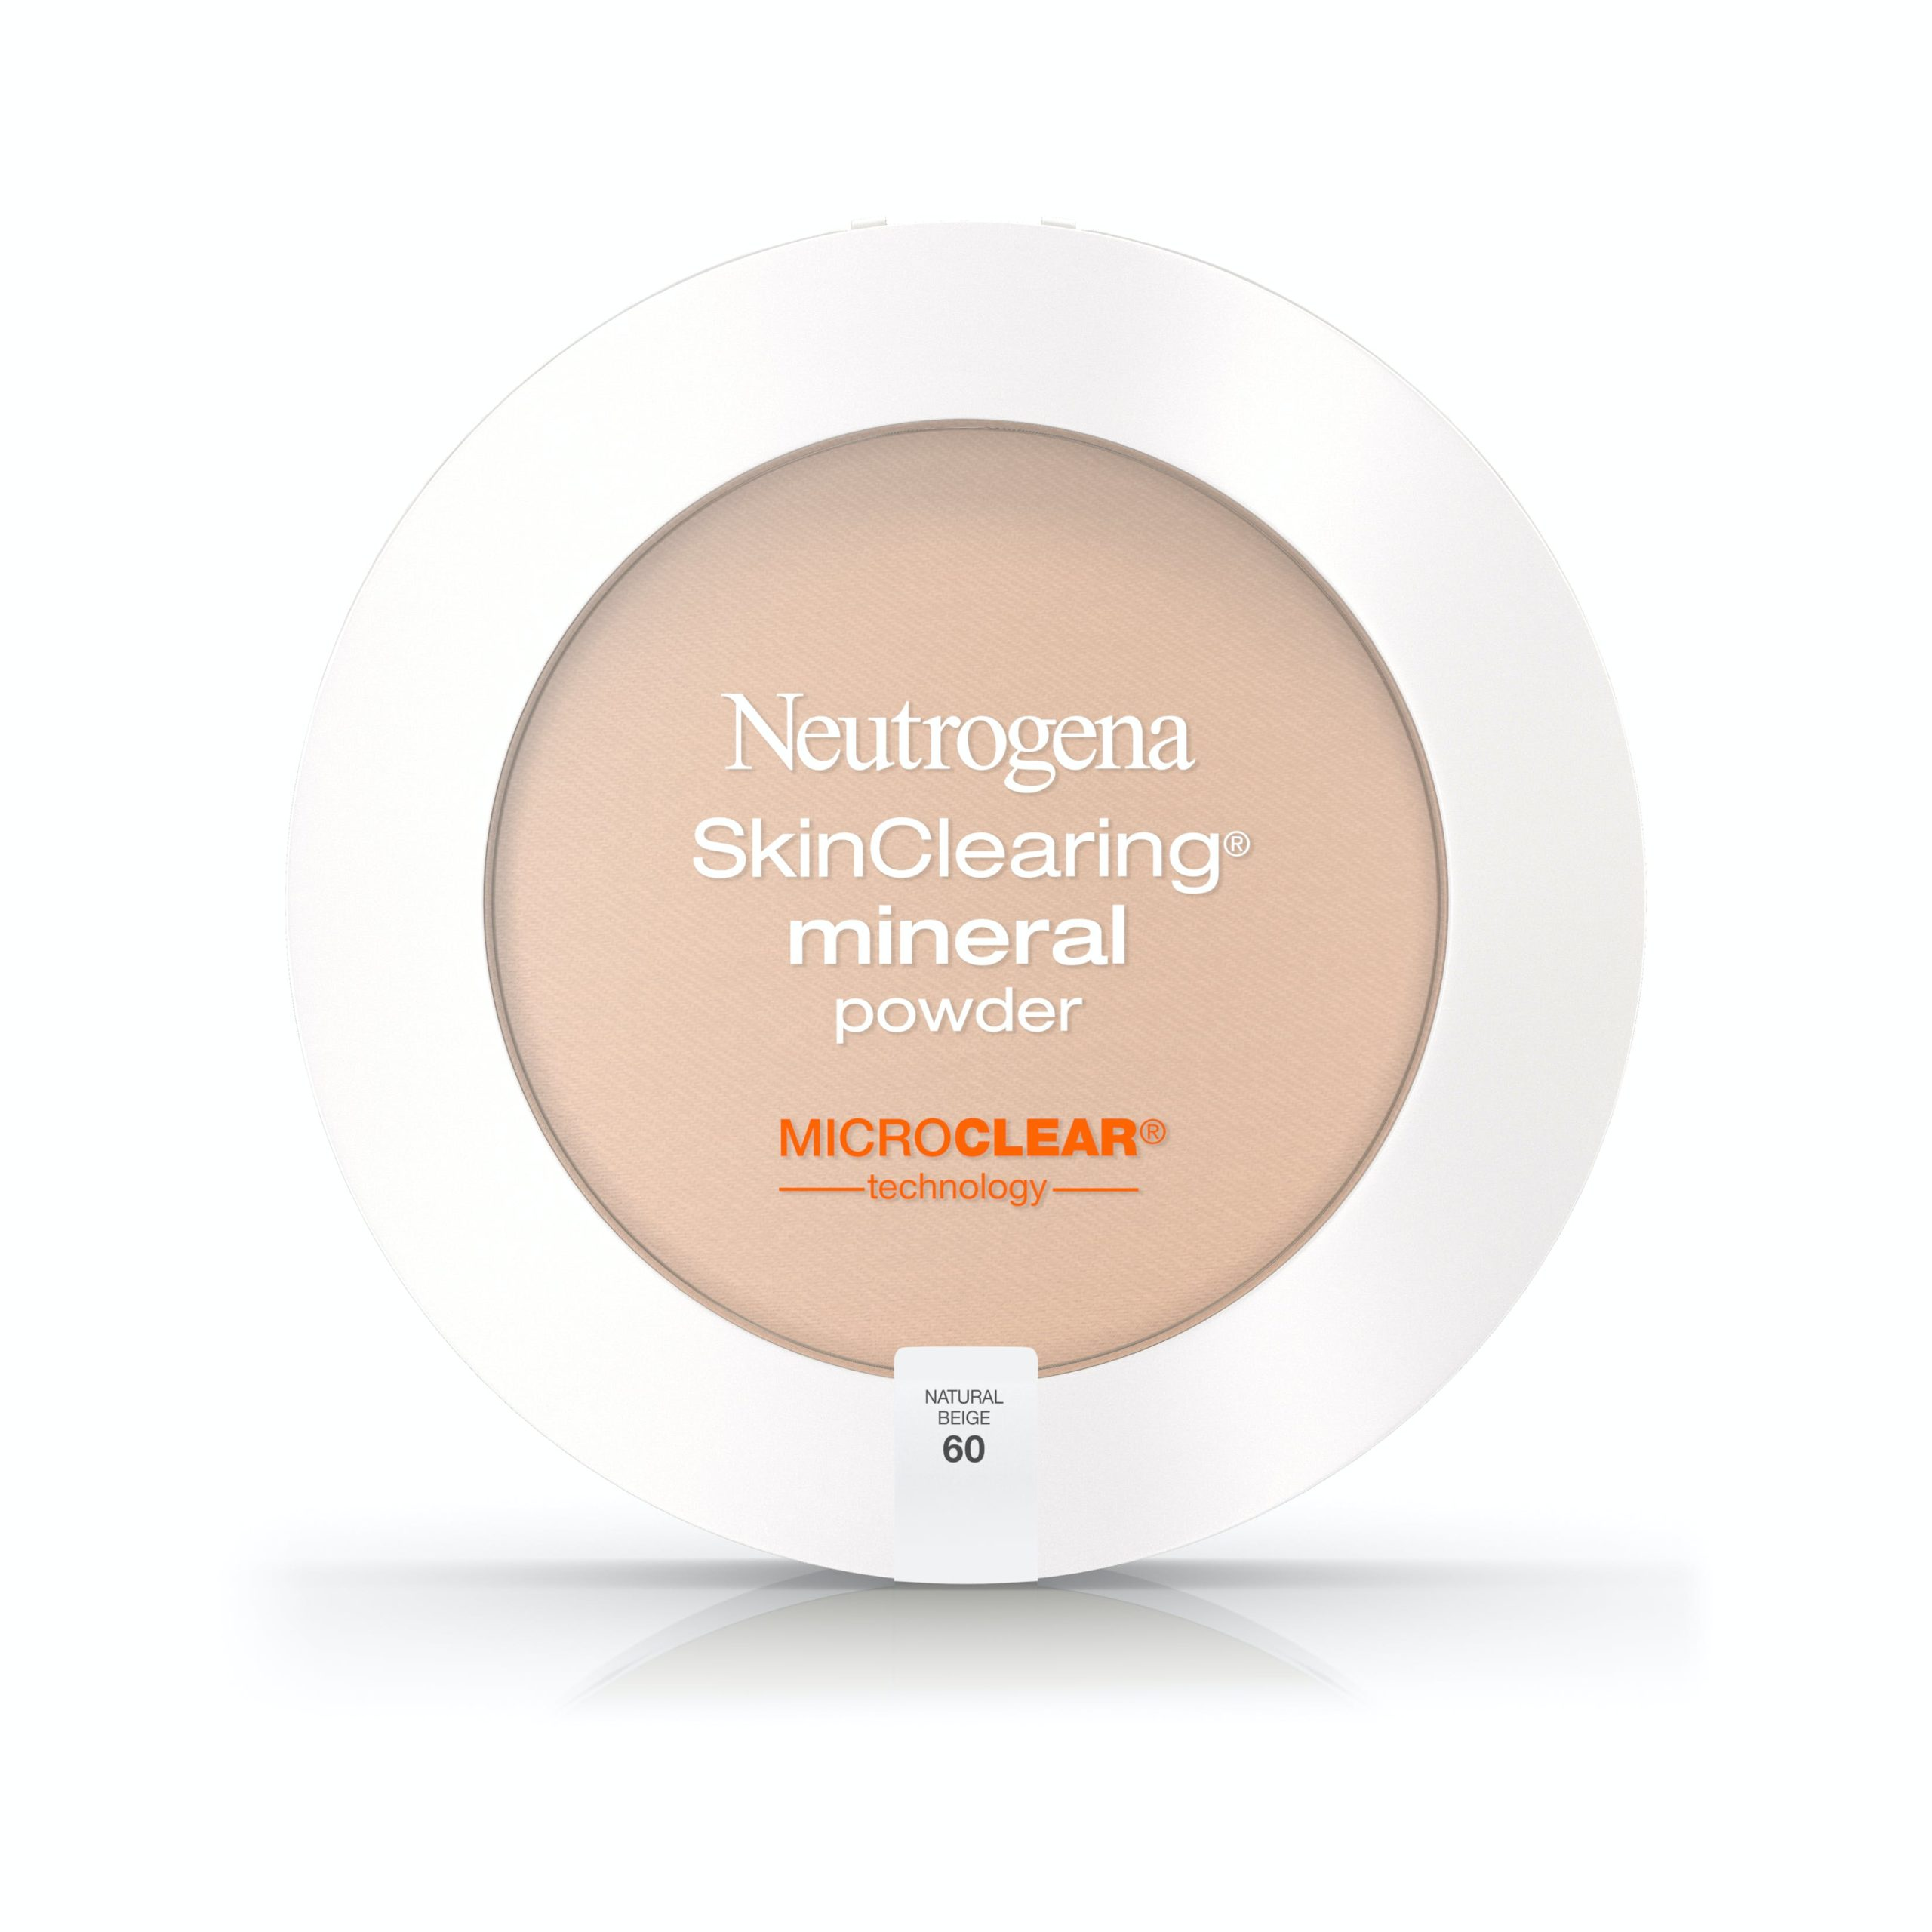 Skinclearing Mineral Powder - Natural Beige